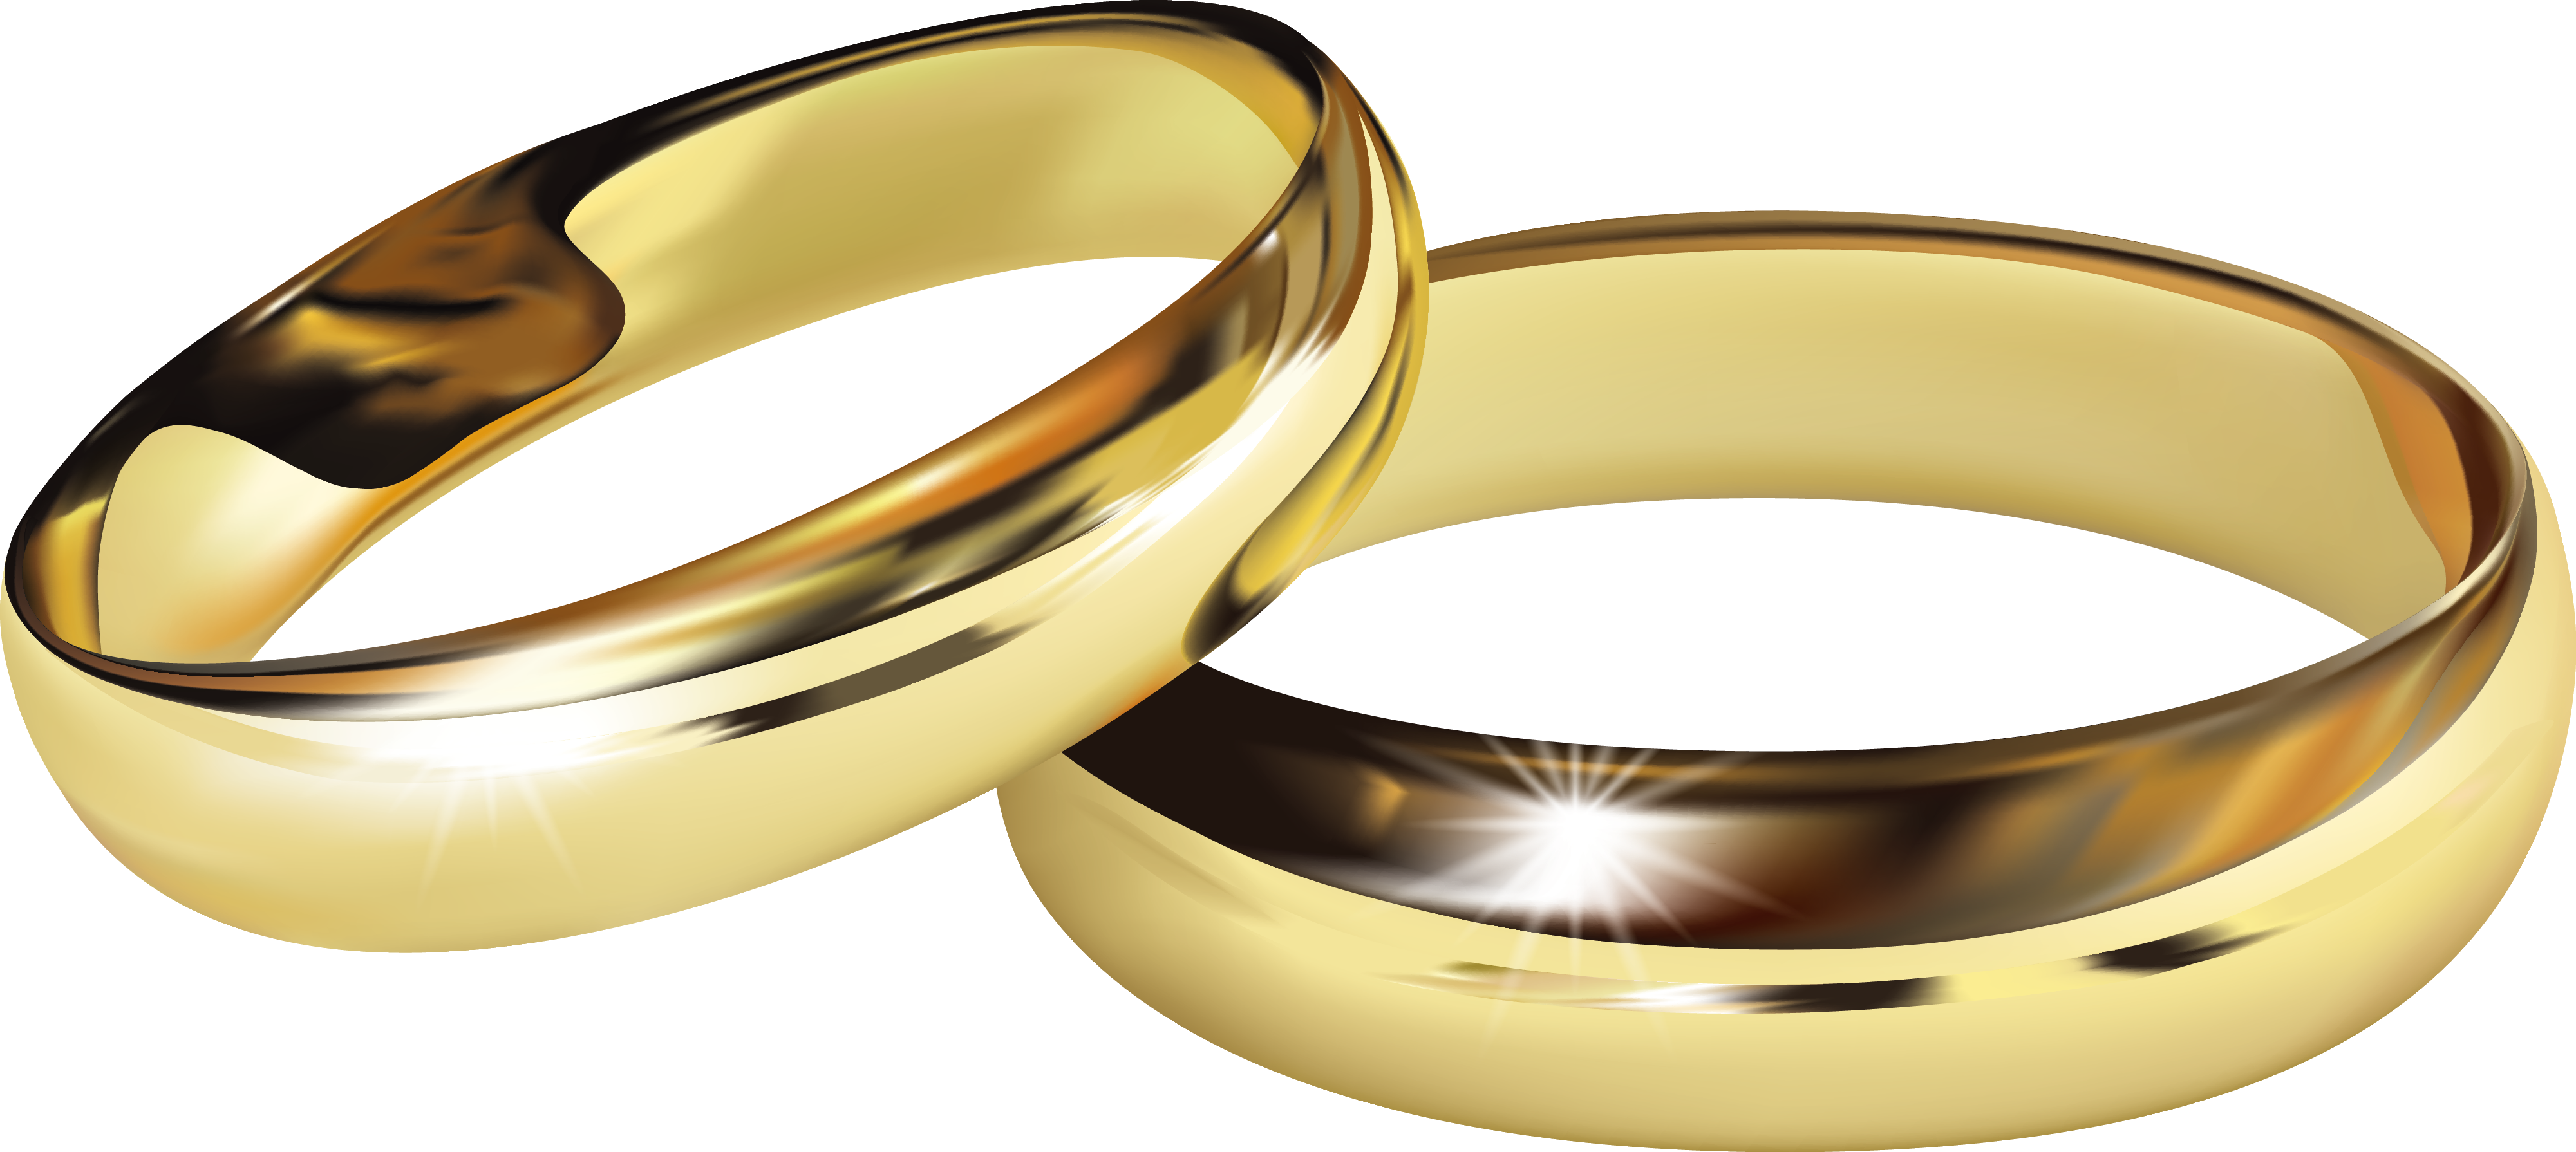 Gold Engagement Ring Clipart Png Wedding Ring Images Wedding Ring Clipart Wedding Ring Vector